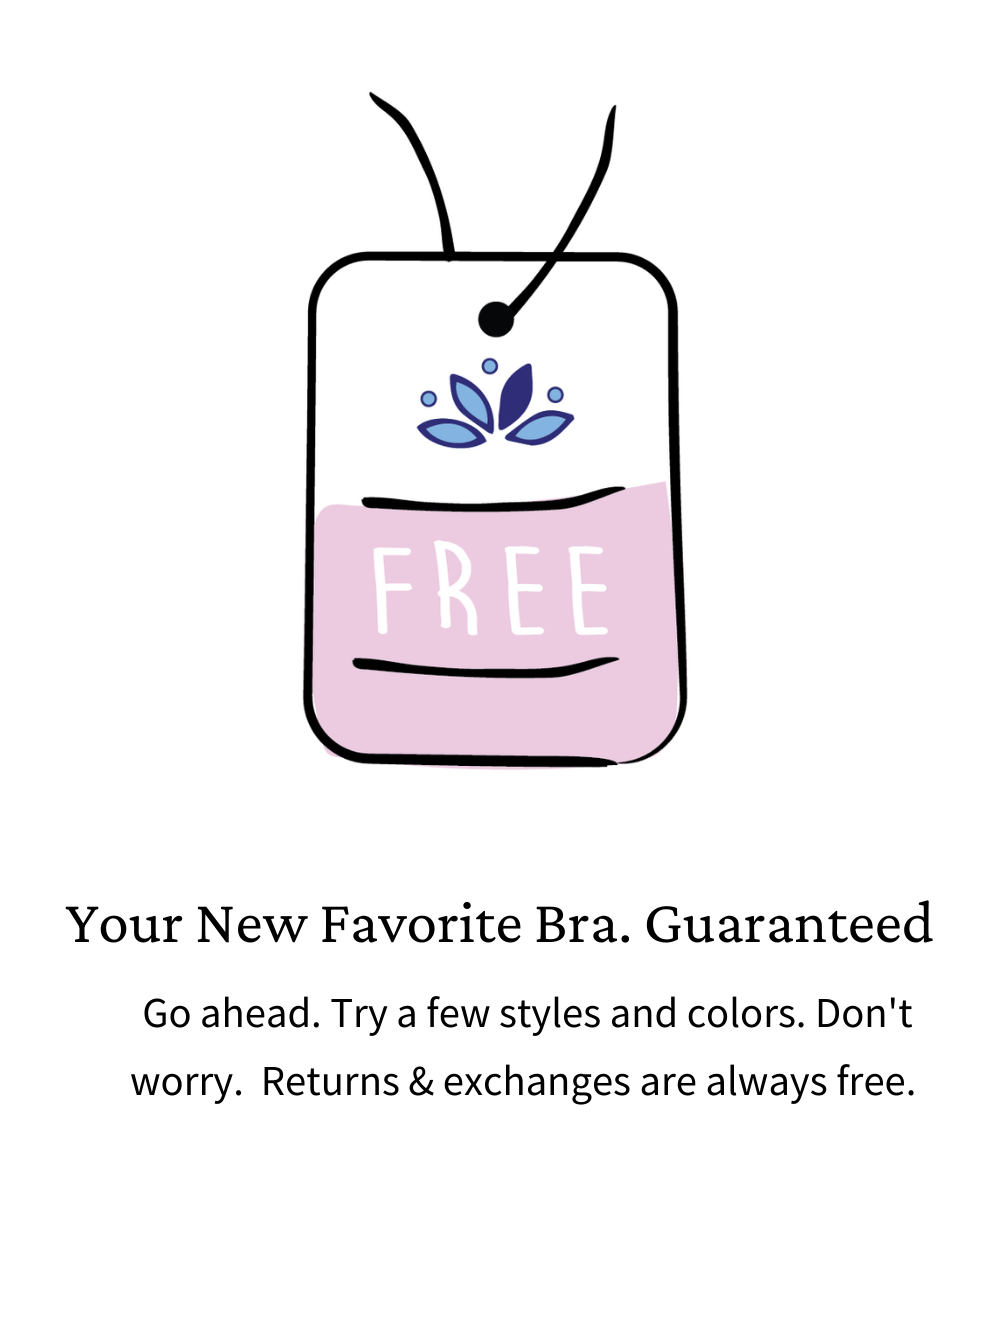 Find Her Perfect Fit. Returns & Exchanges are Free